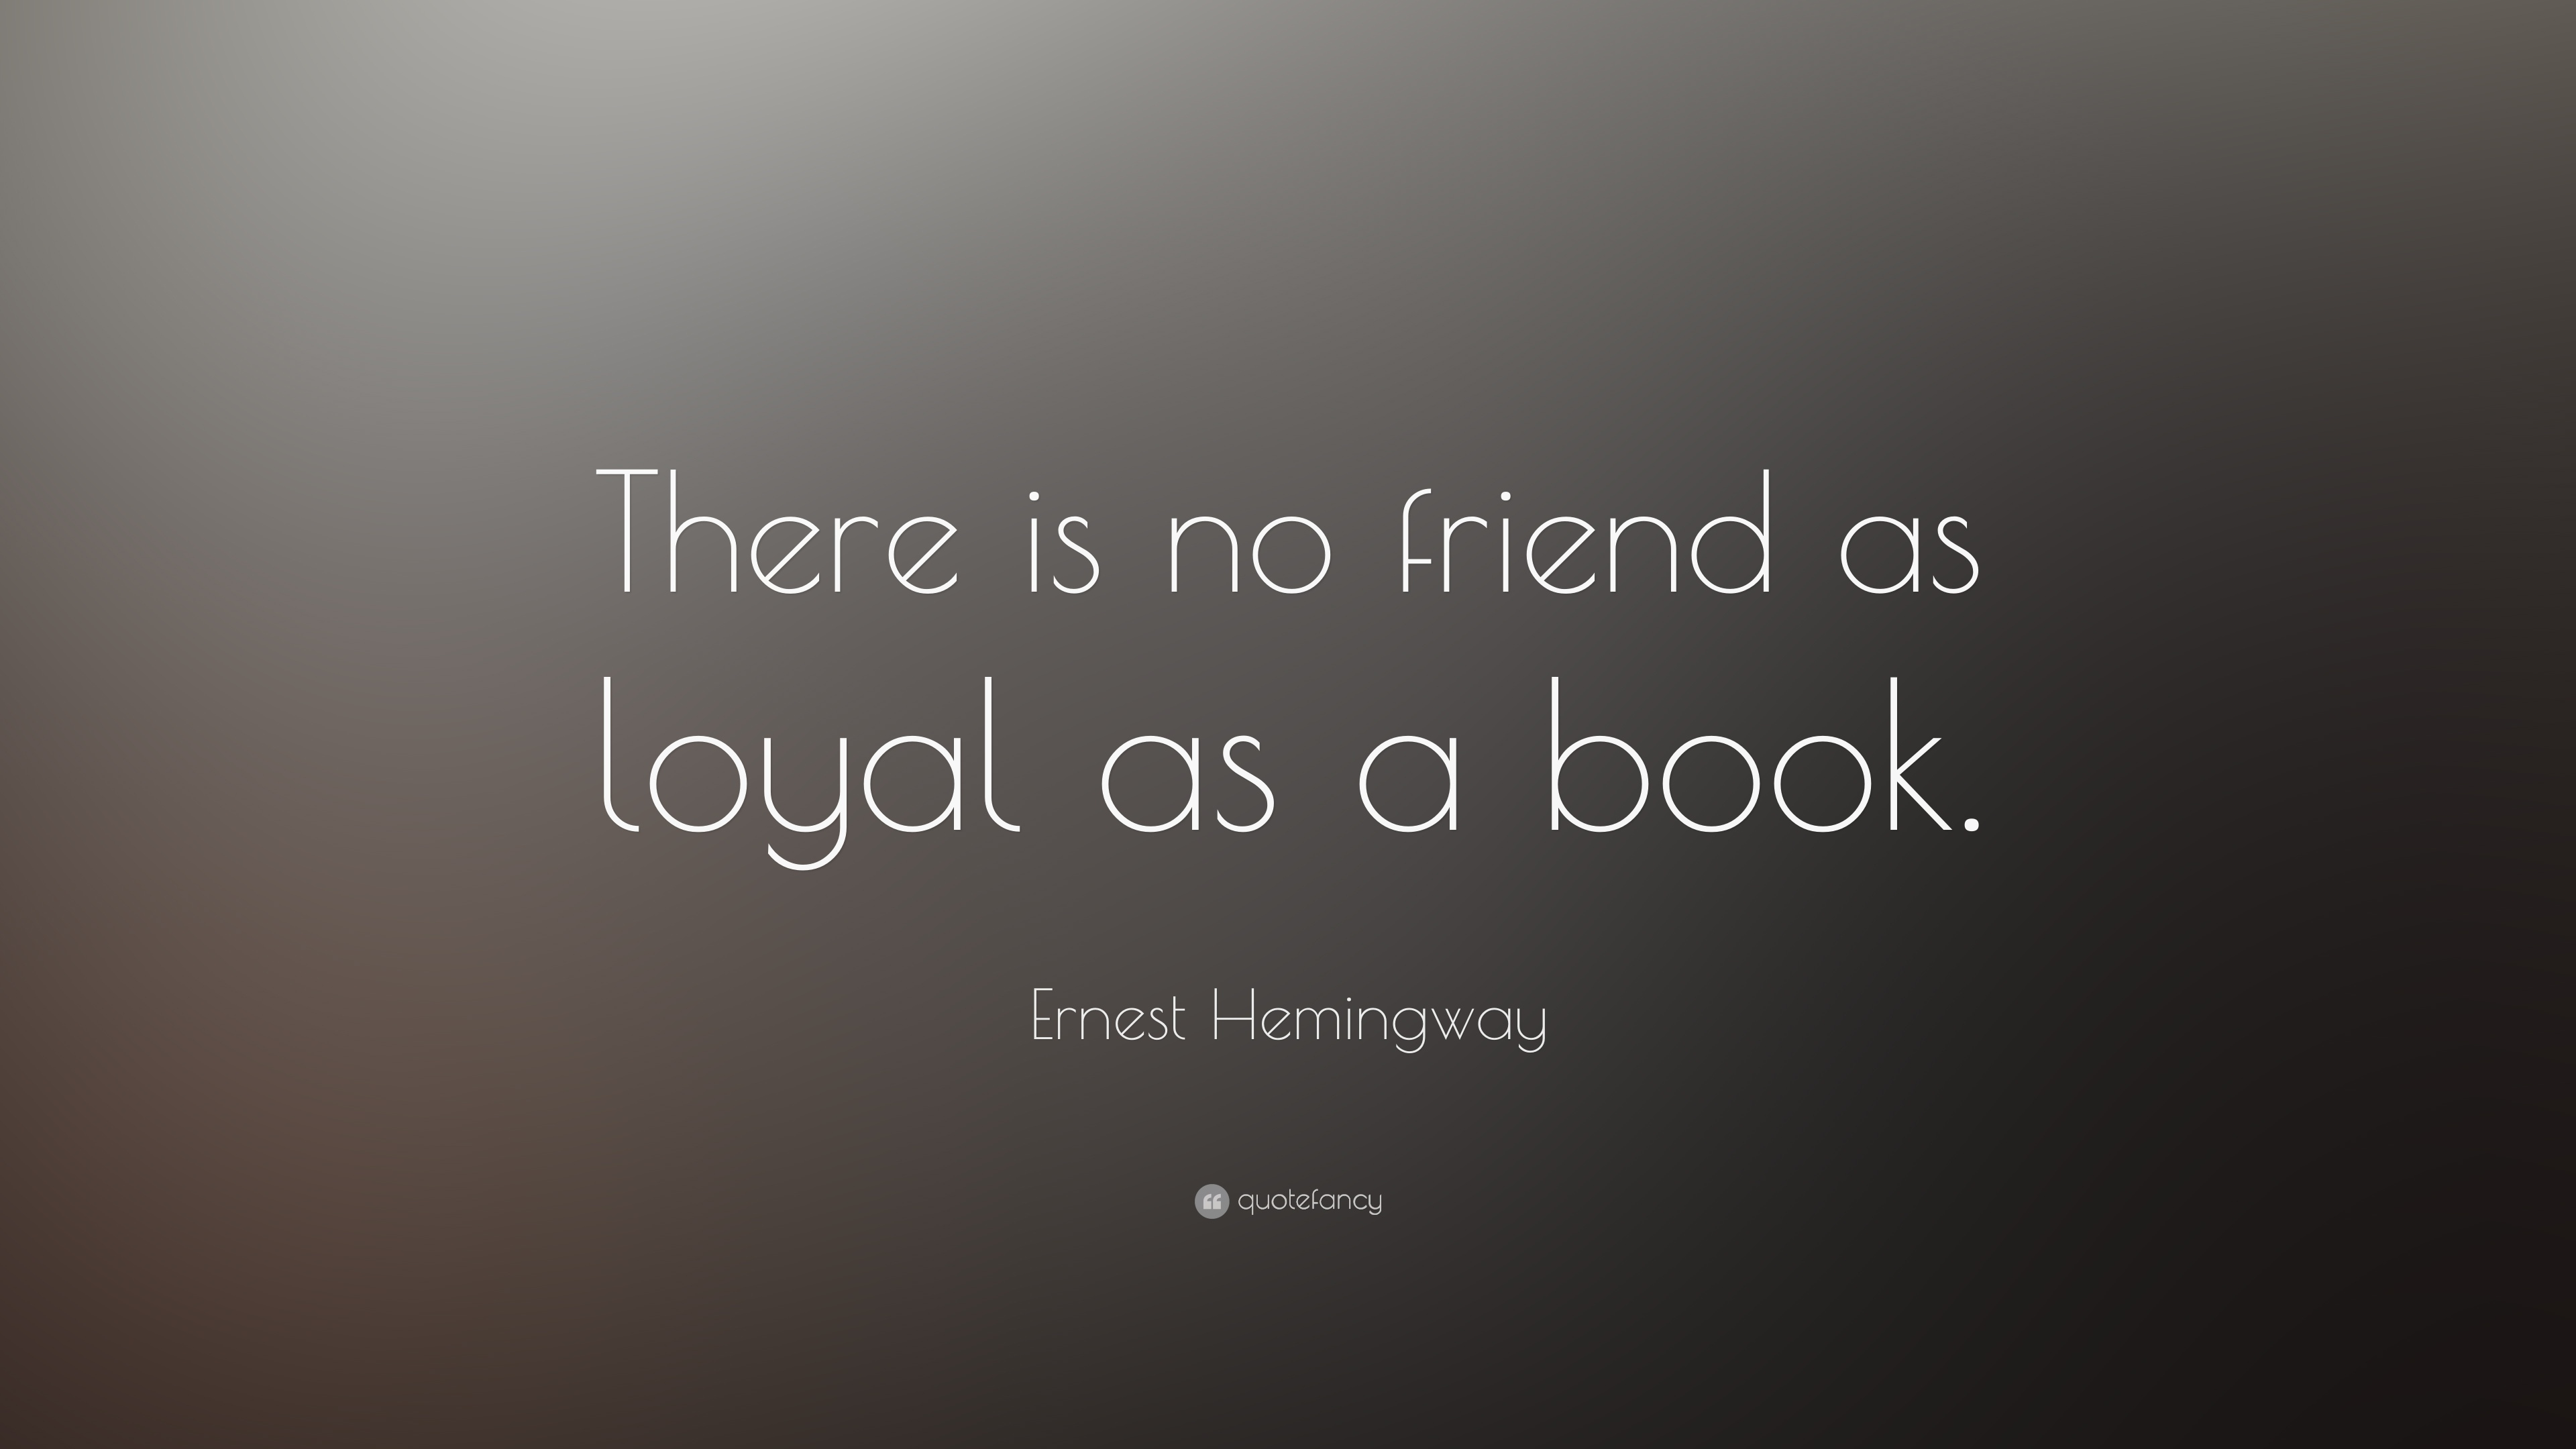 Ernest hemingway quote there is no friend as loyal as a book ernest hemingway quote there is no friend as loyal as a book publicscrutiny Image collections